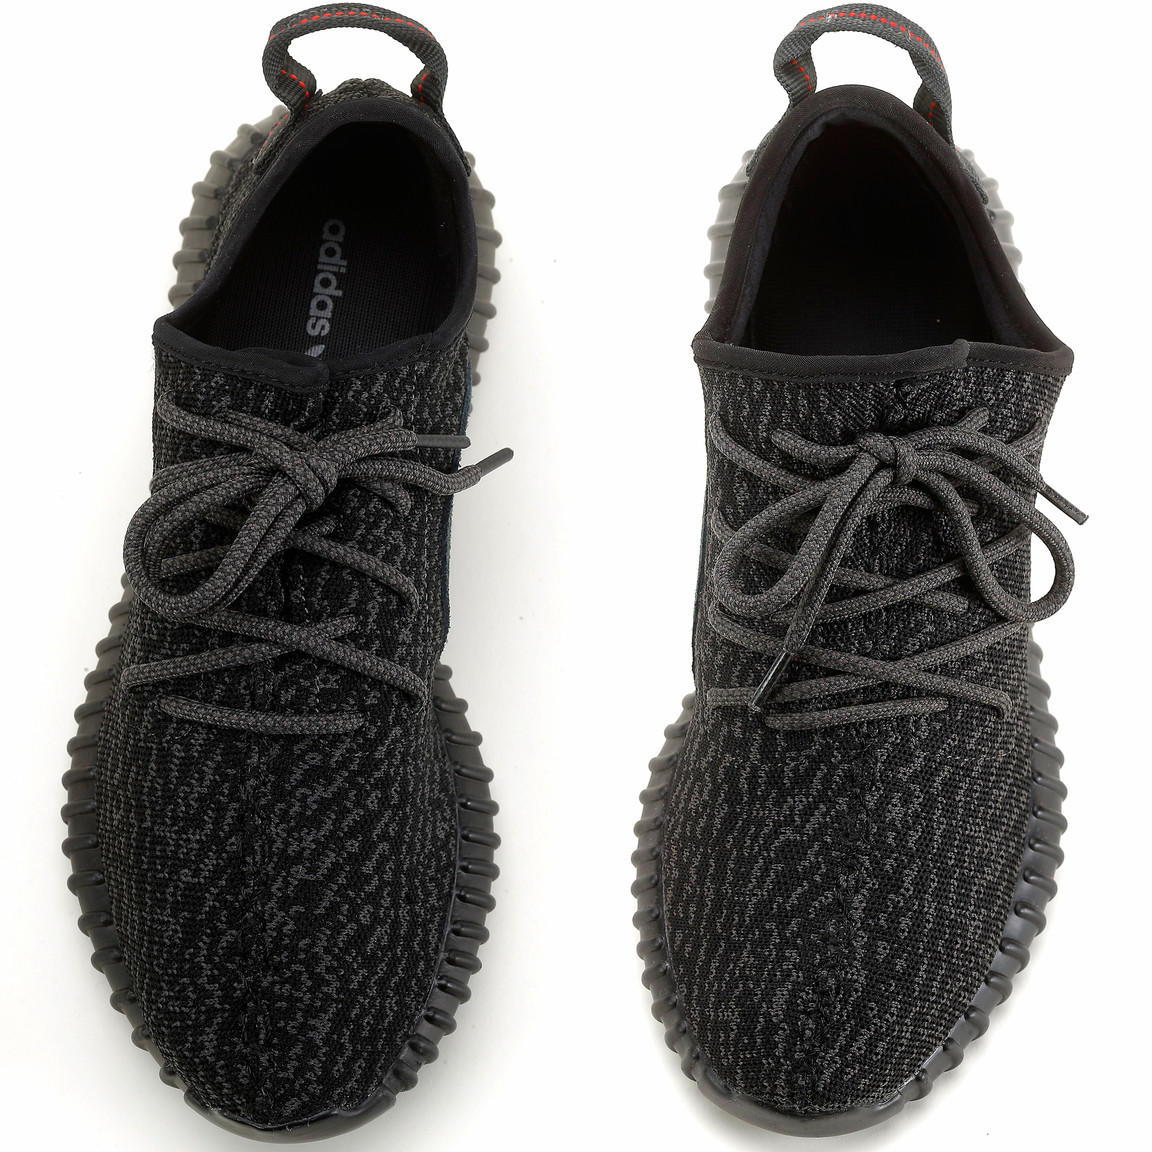 "1c951de7835e50 ... in the game anymore."" This composite image shows an authentic Yeezy"